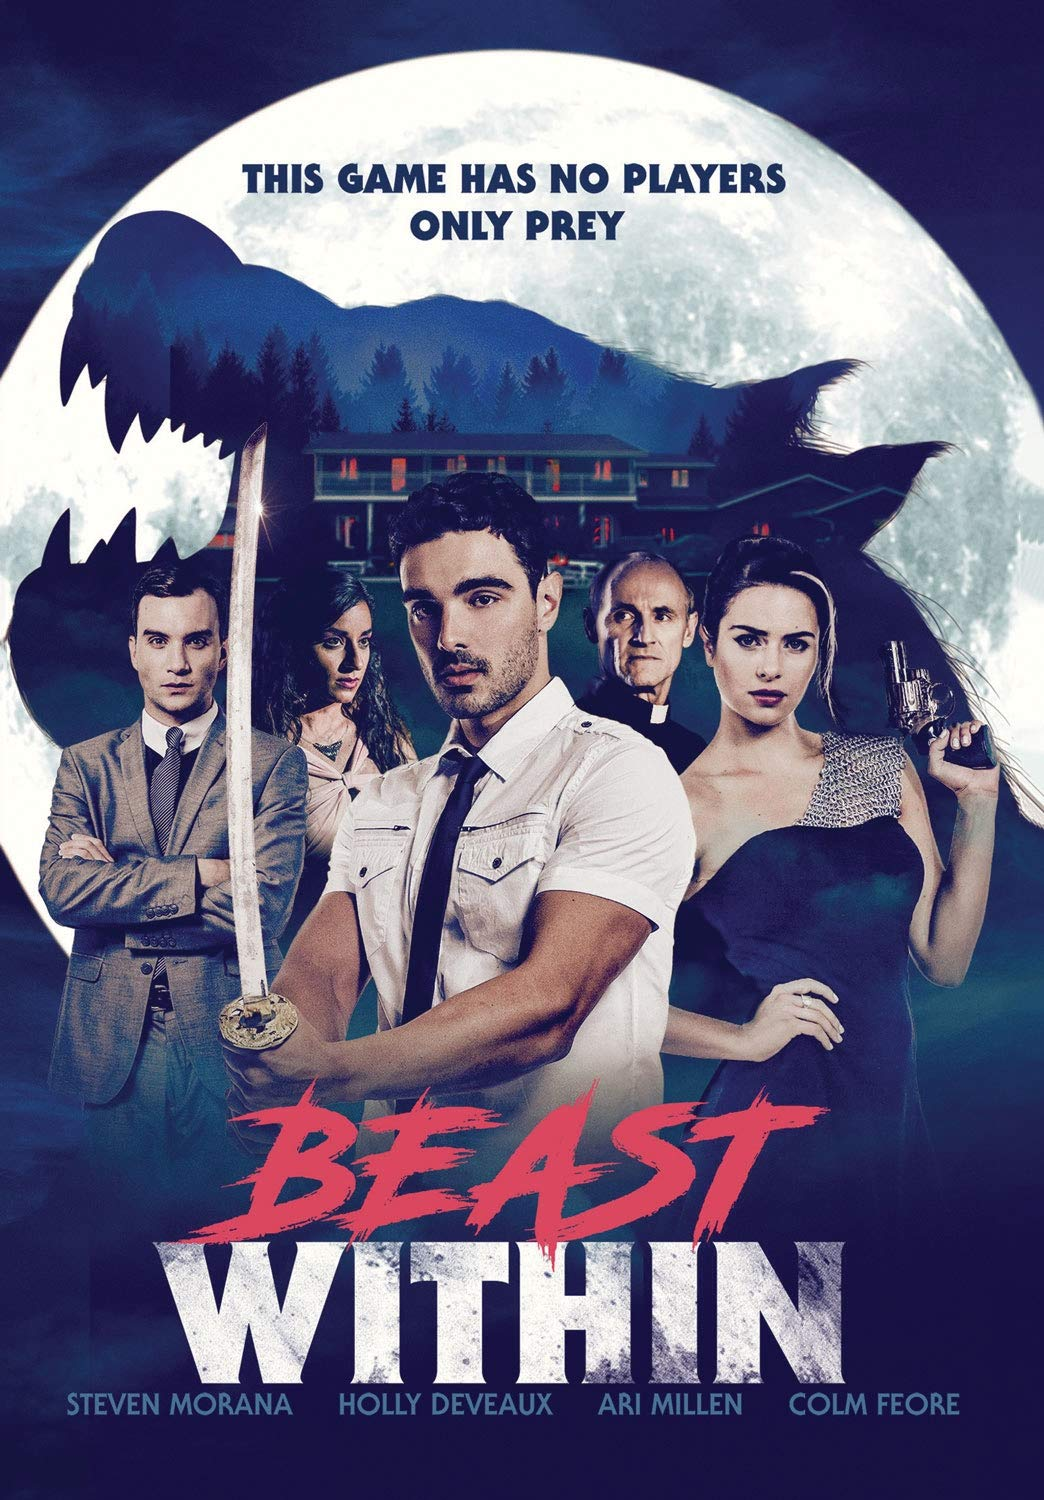 Werewolf Thriller BEAST WITHIN Takes a Bite Out of DVD (US / 23 February) from Stonecutter Media